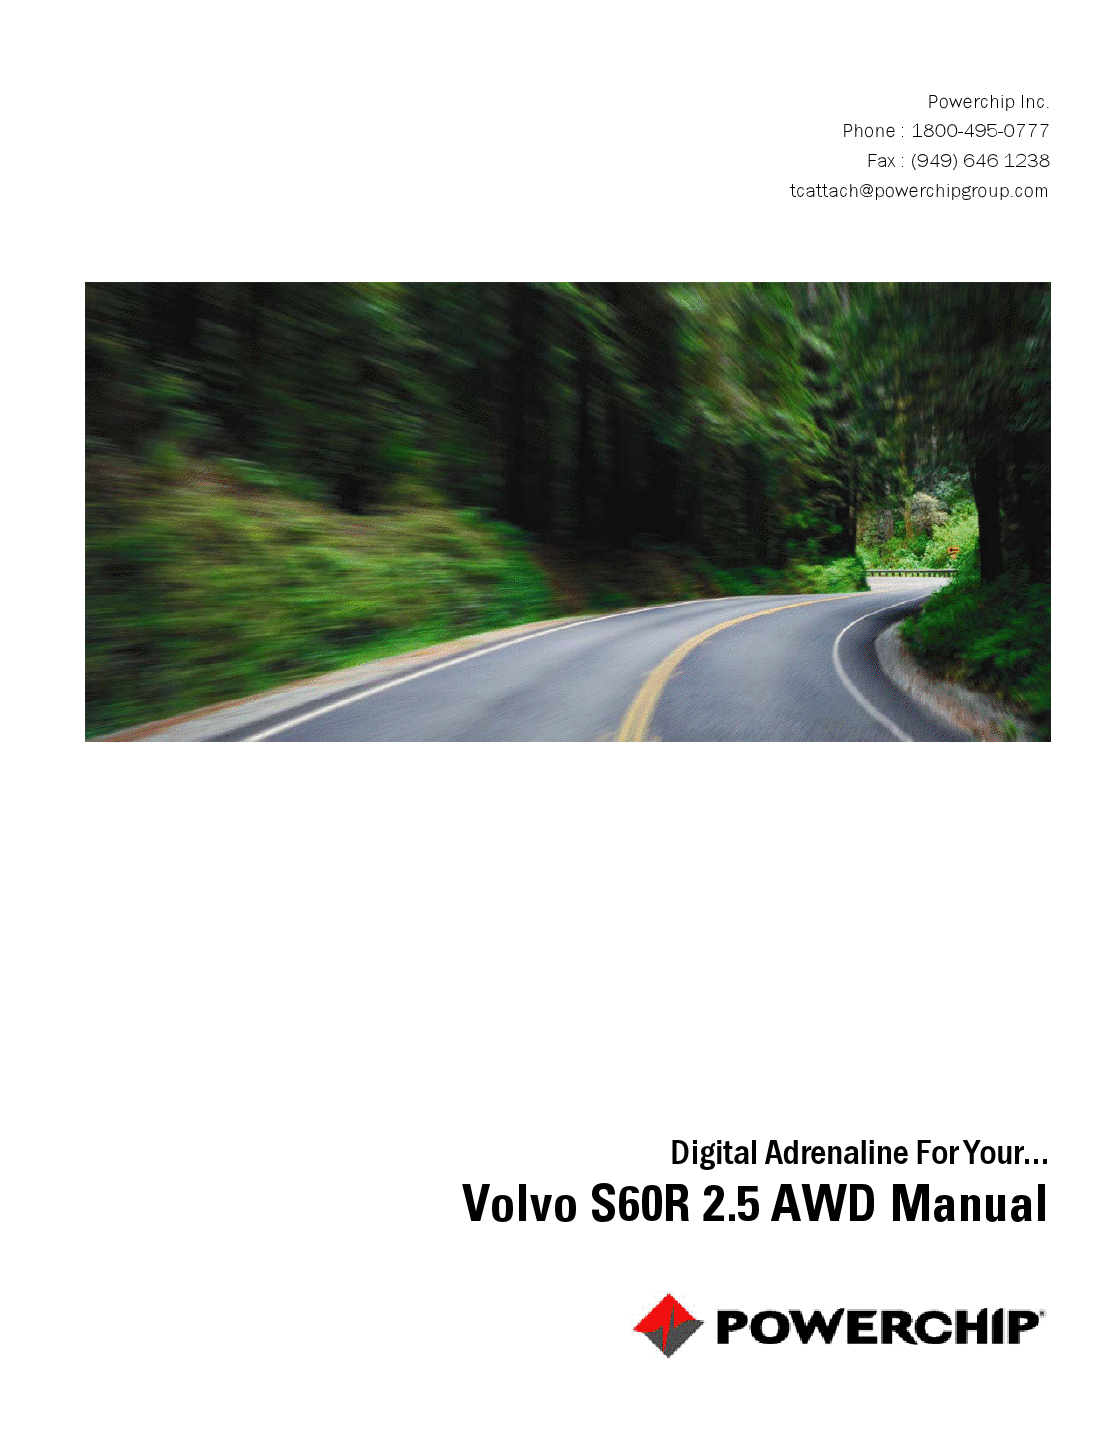 volvo v70 workshop manual free download